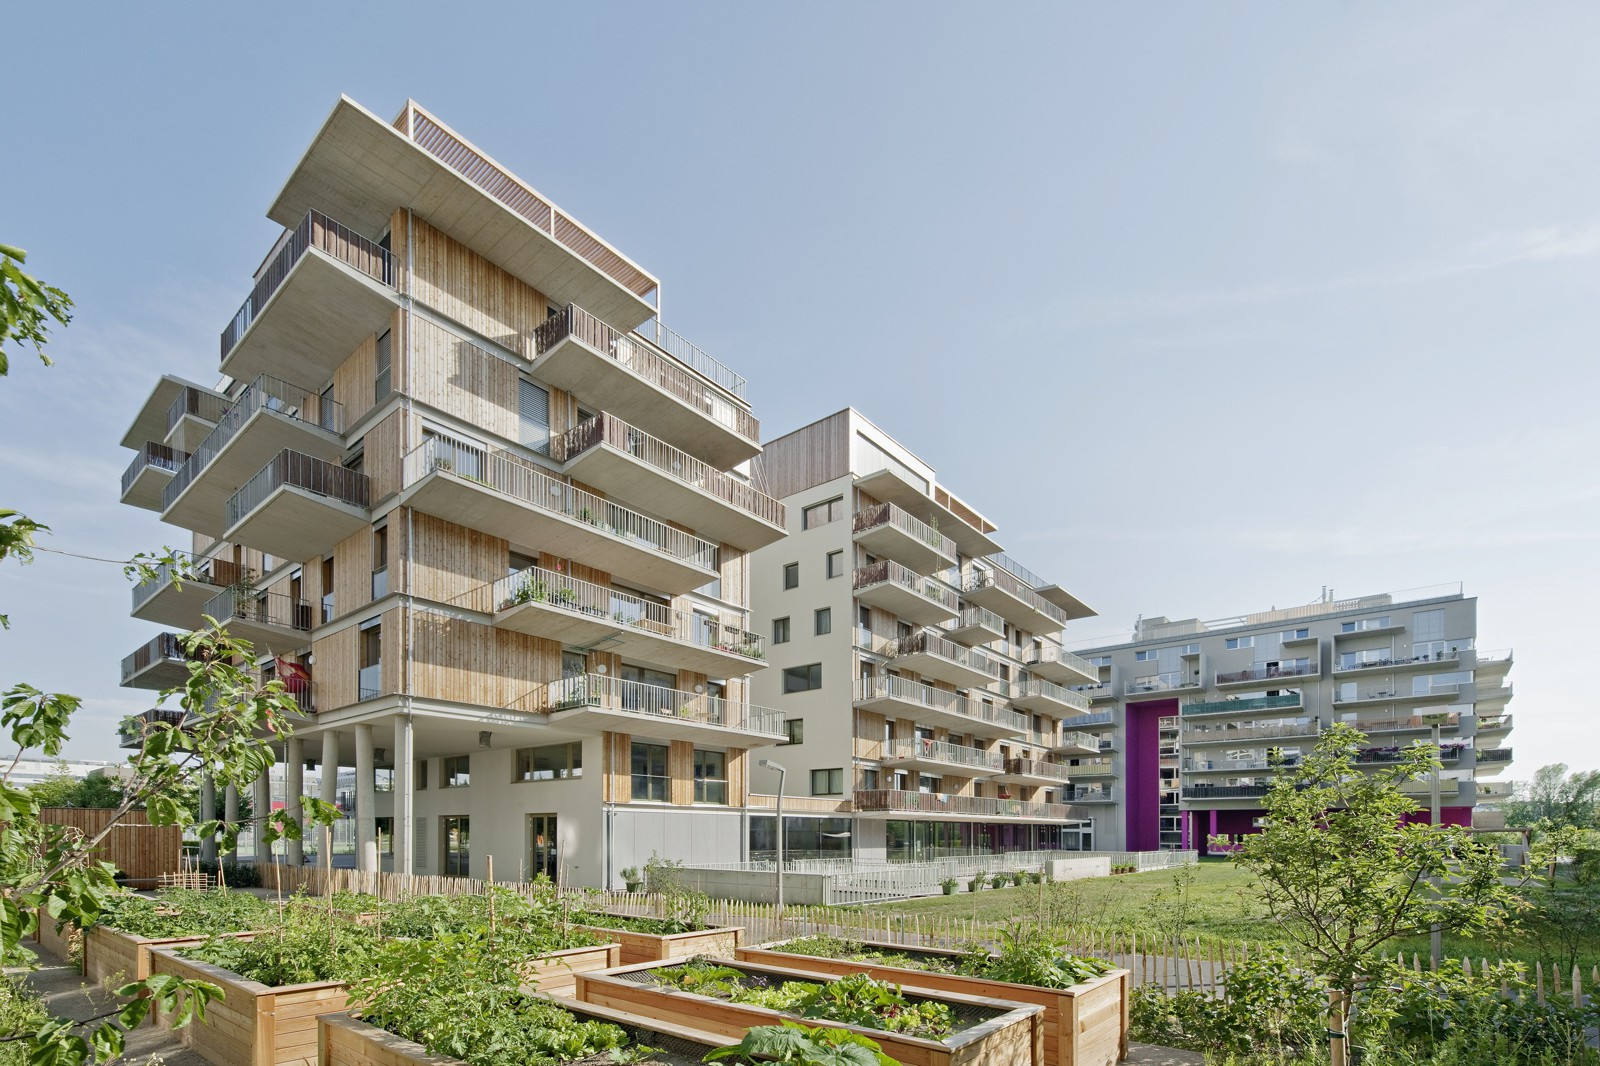 Architektur Rendering Wien Trace The History Of Alternative Housing In Together The New